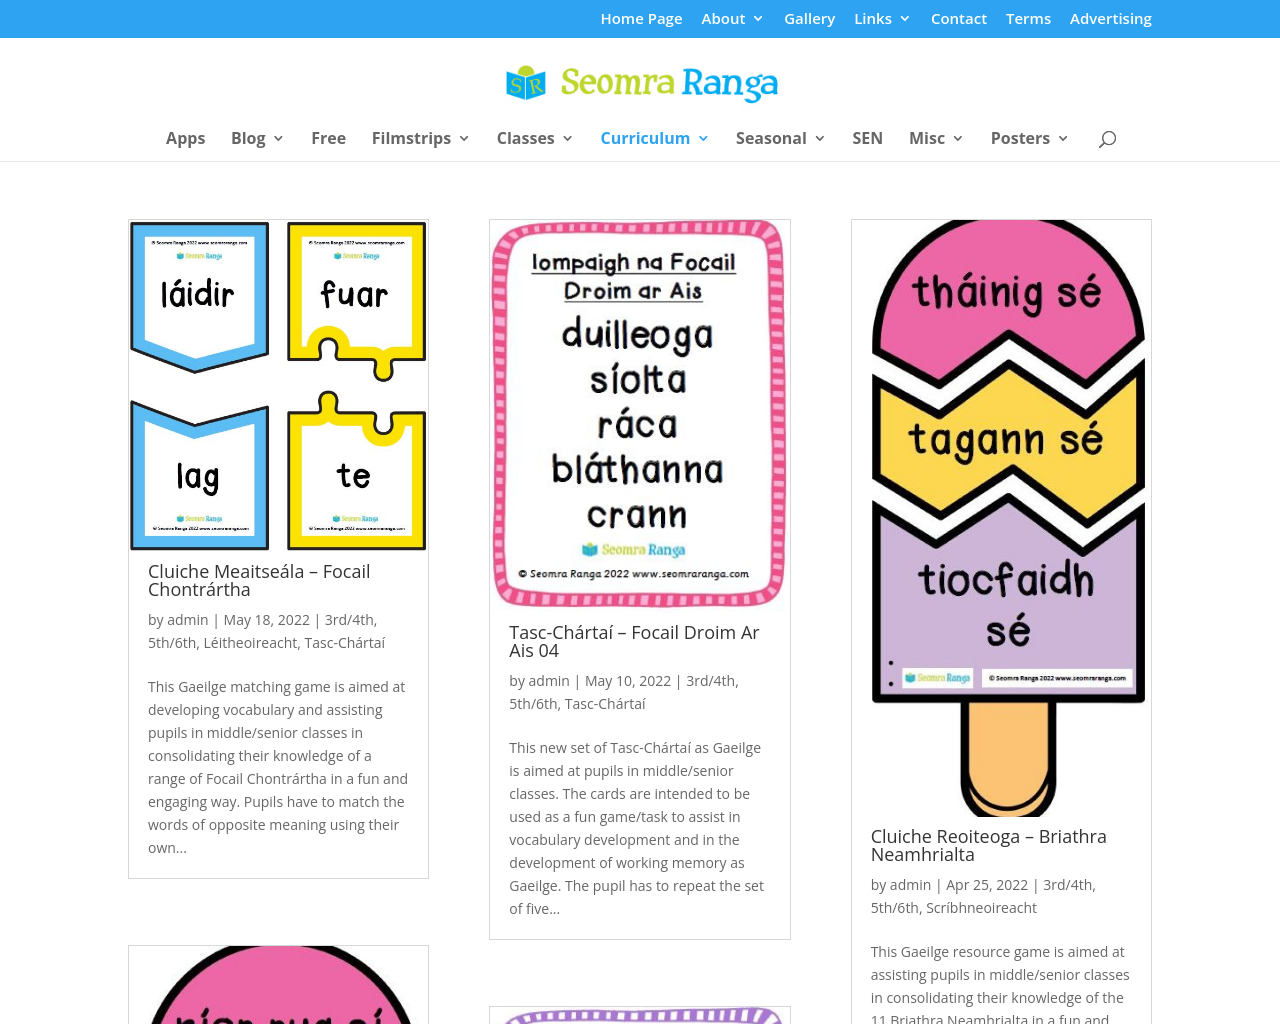 Seomra Ranga Gaeilge Resources for Teaching & Learning